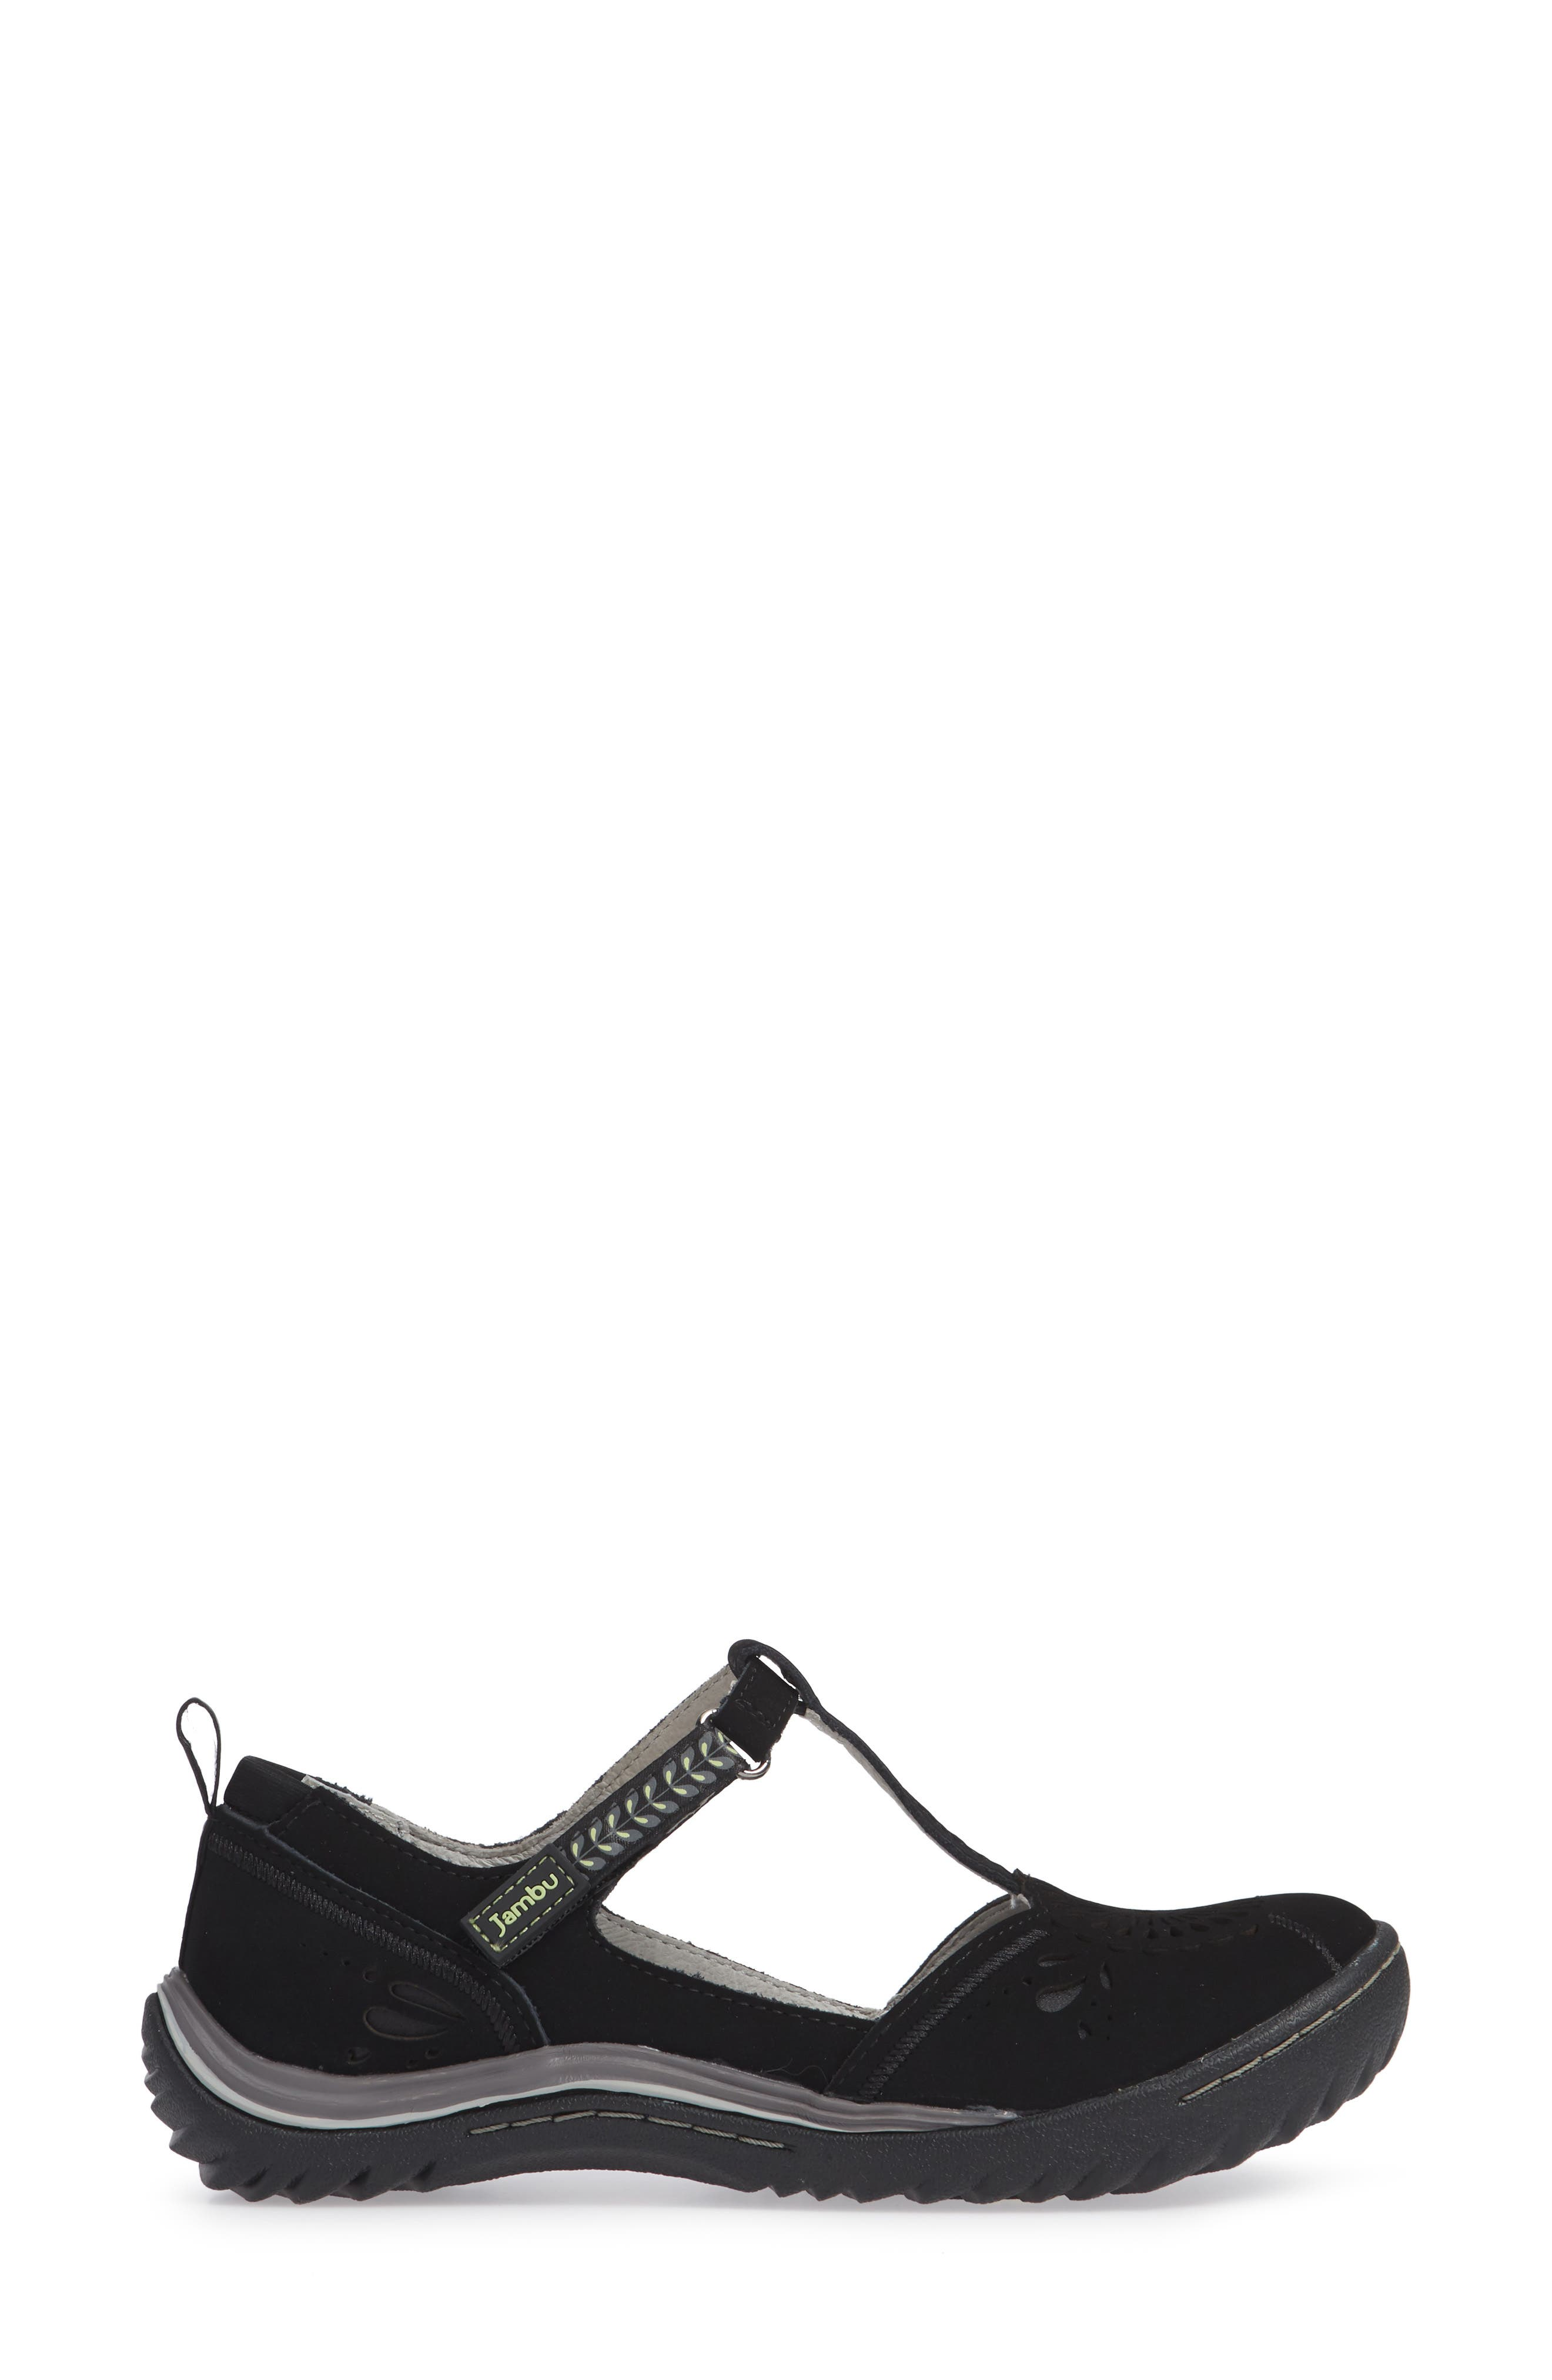 Sunkist Strappy Sneaker,                             Alternate thumbnail 3, color,                             BLACK/ CHIVE NUBUCK LEATHER